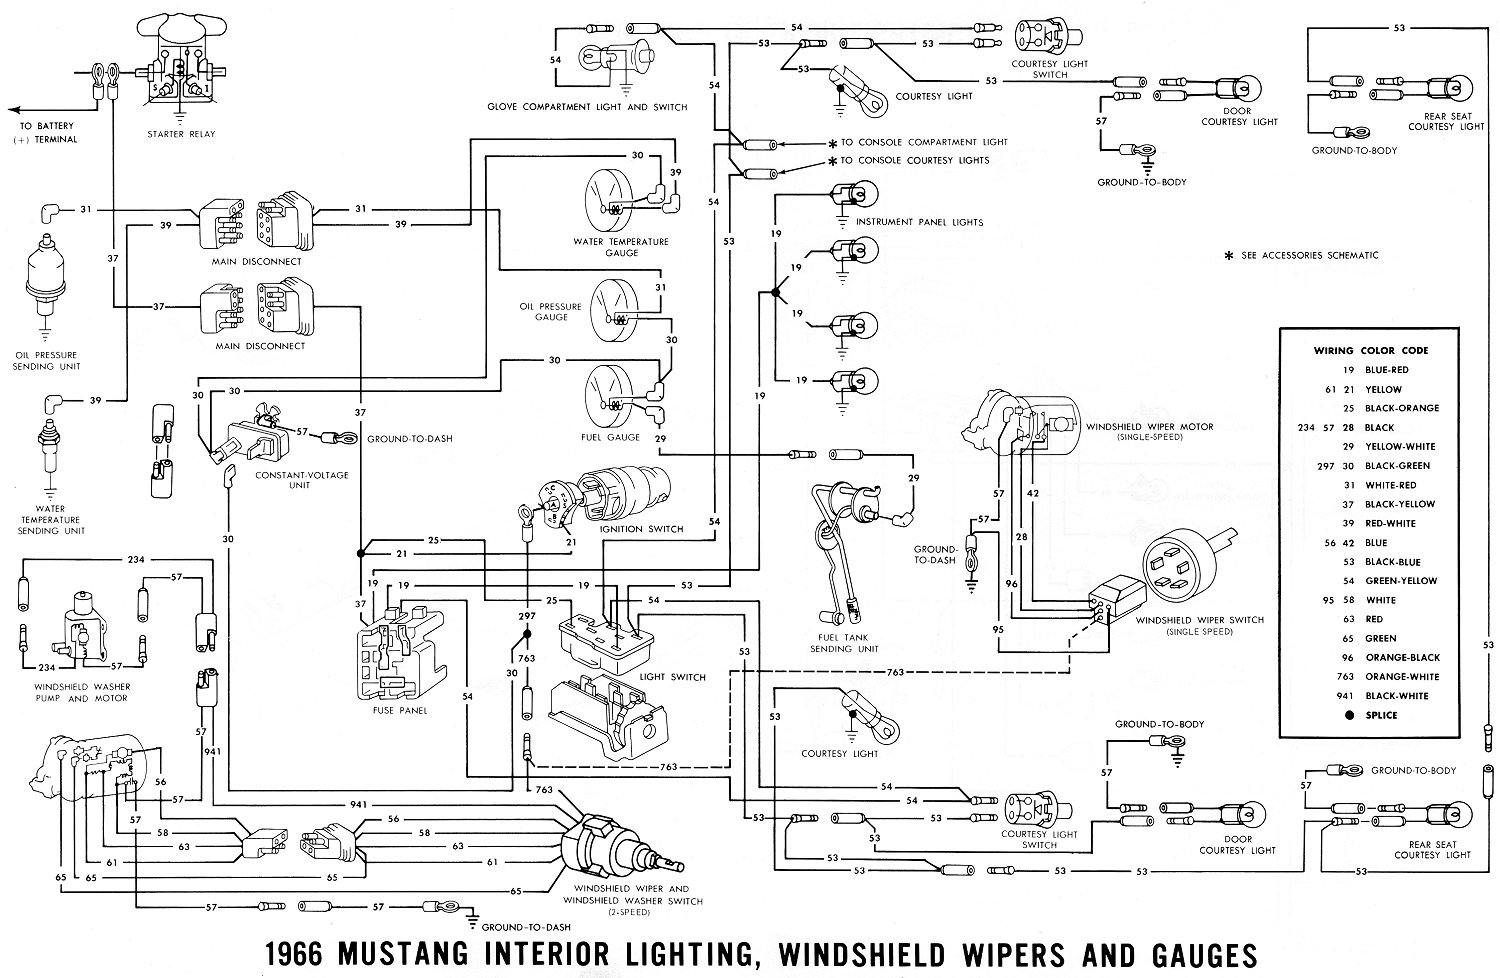 66inter1 1966 mustang wiring diagrams average joe restoration 1967 Mustang Wiring Harness Pigtail Diagram at webbmarketing.co